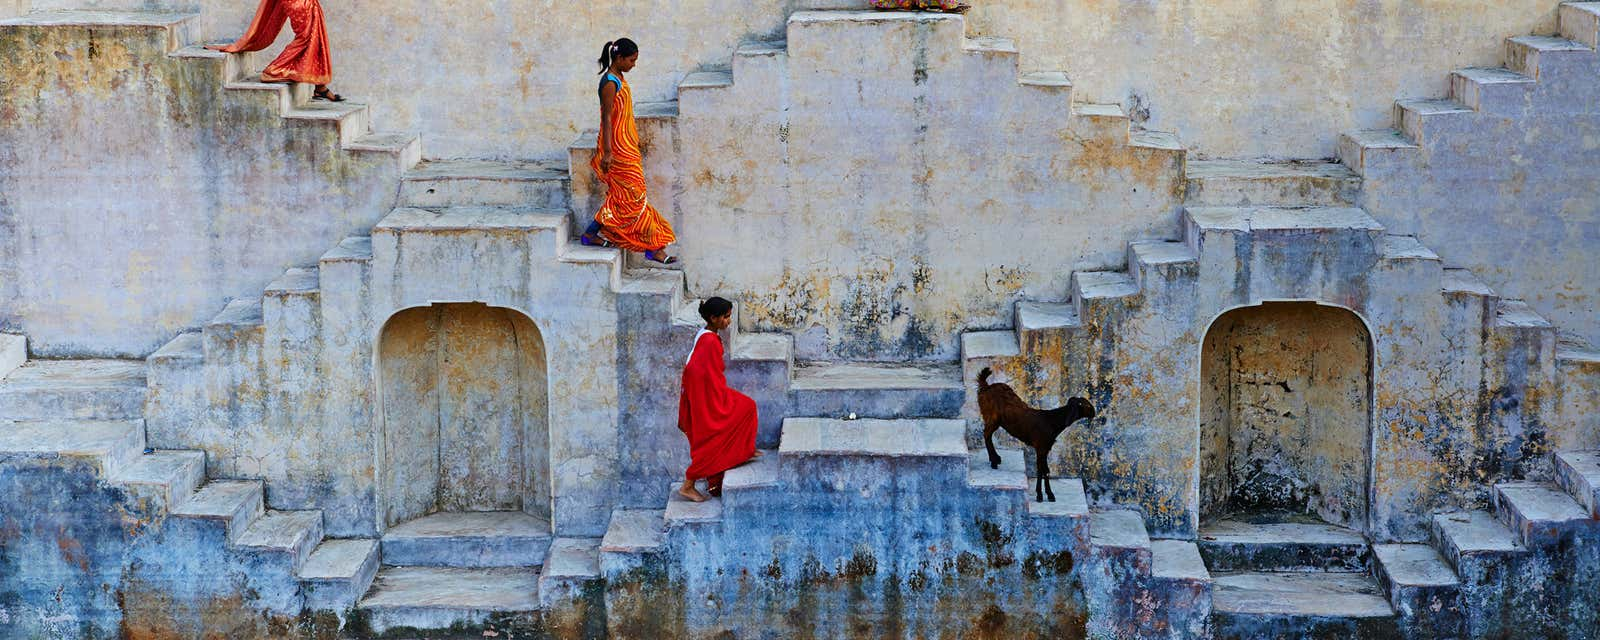 Women descending the steps of a water tank, Jaipur, India.